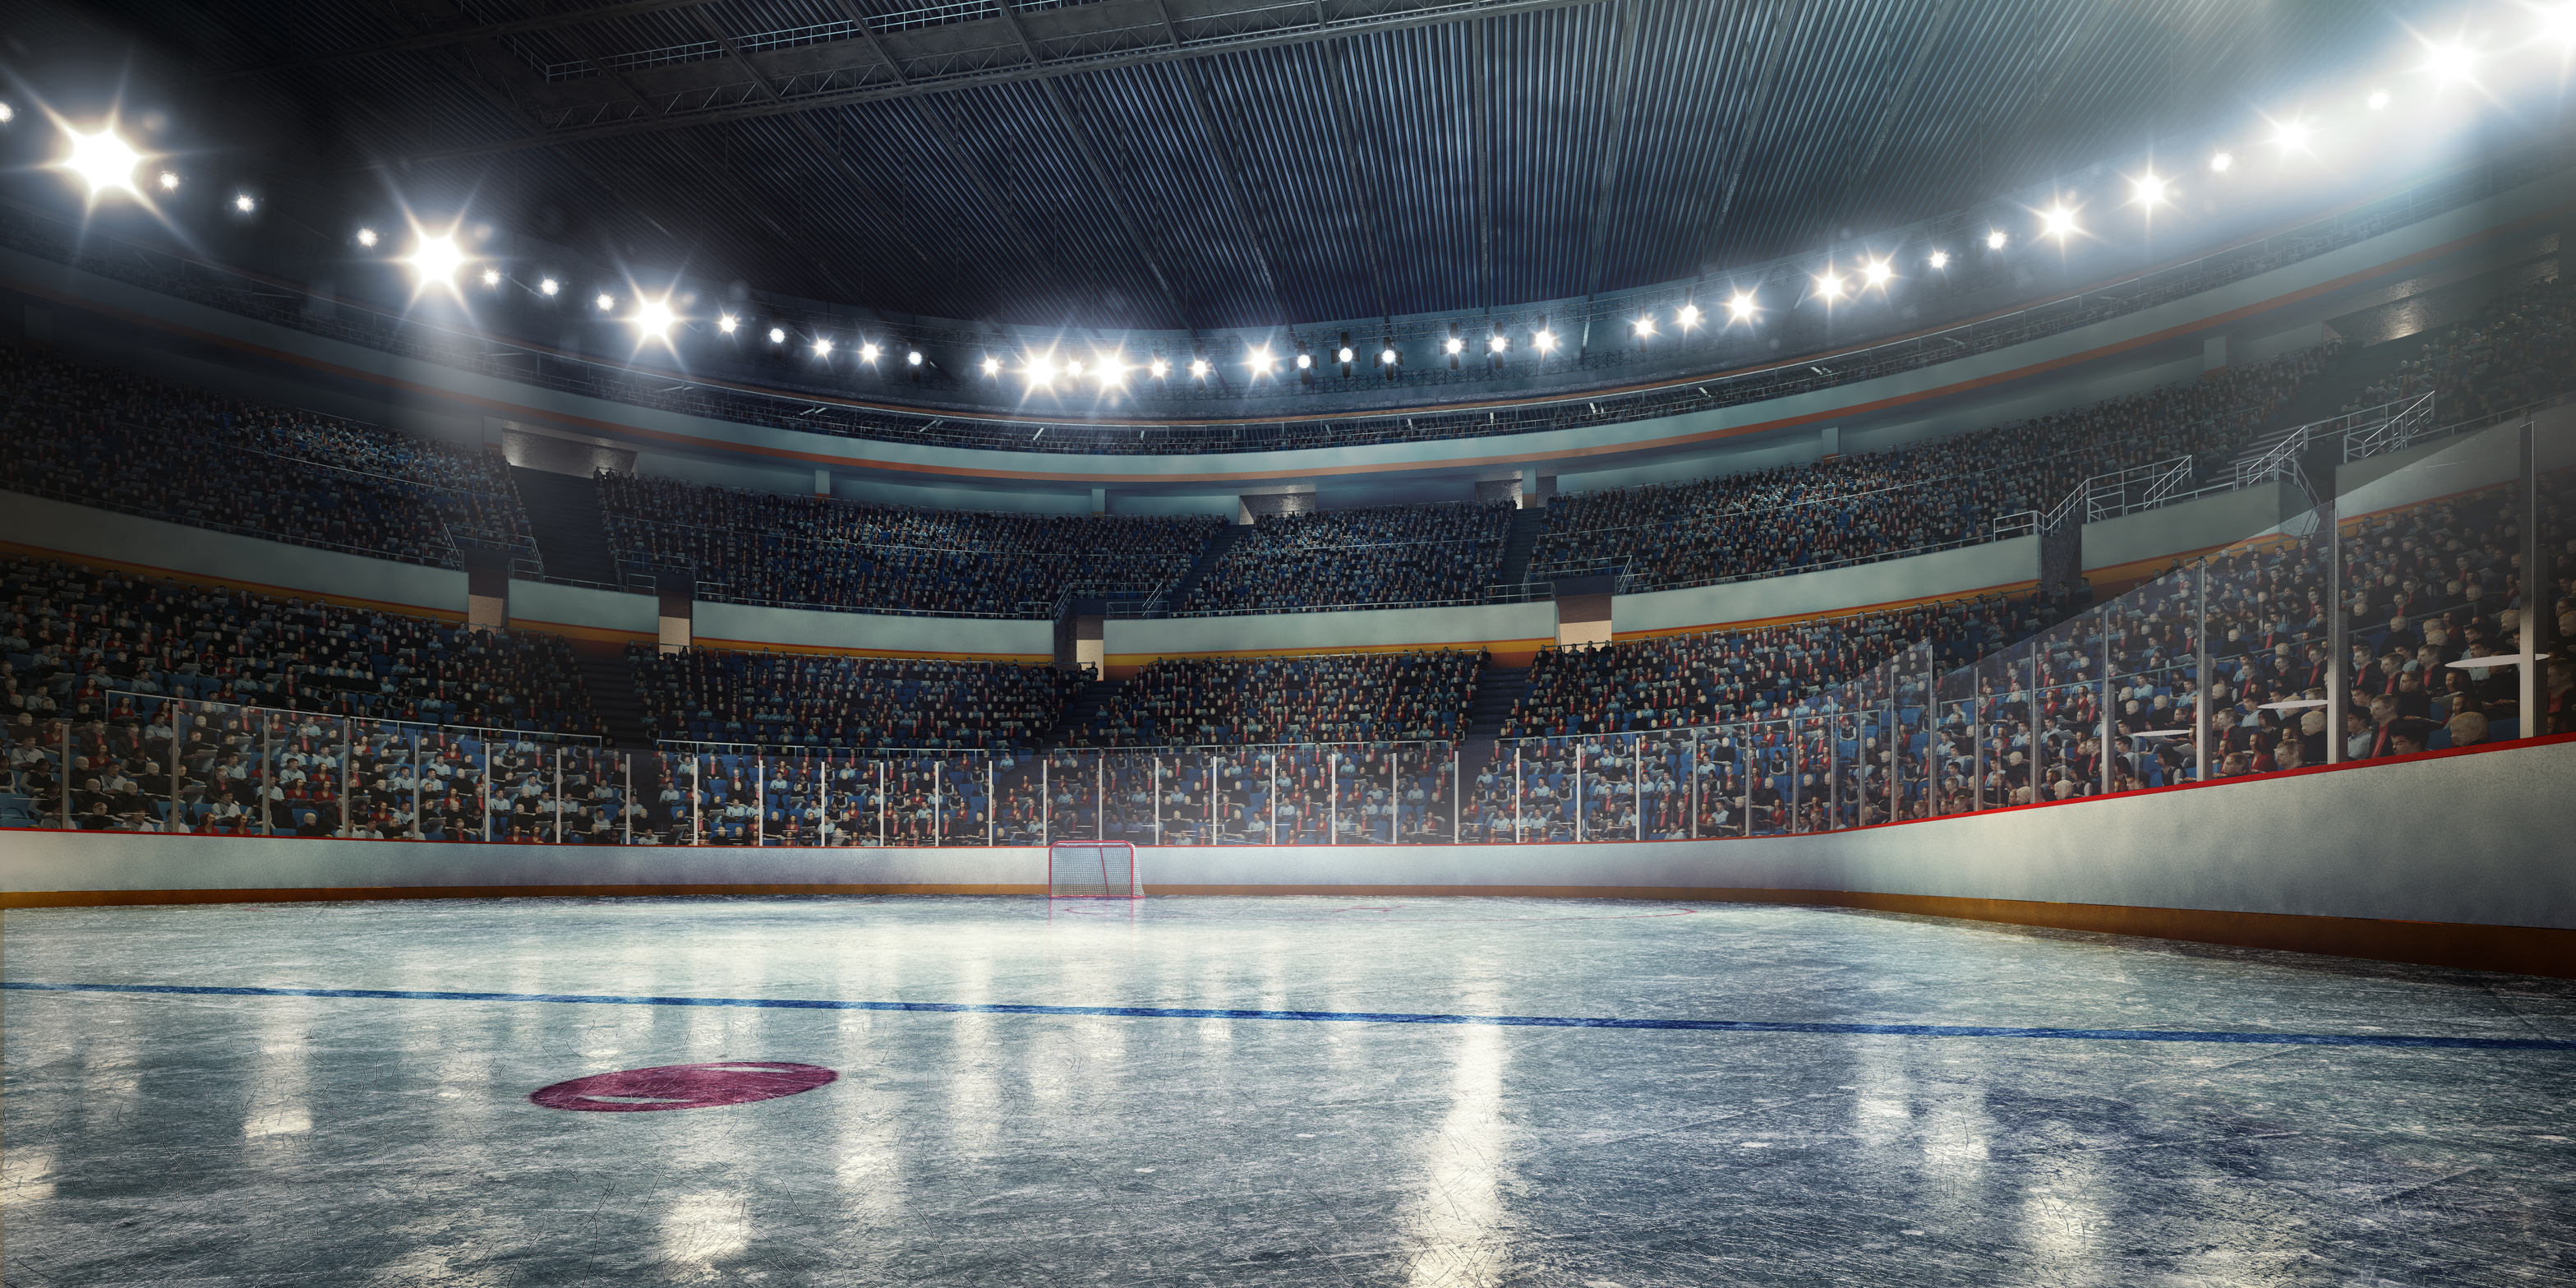 Made in 3D professional hockey stadium arena in indoors stadium full of spectators